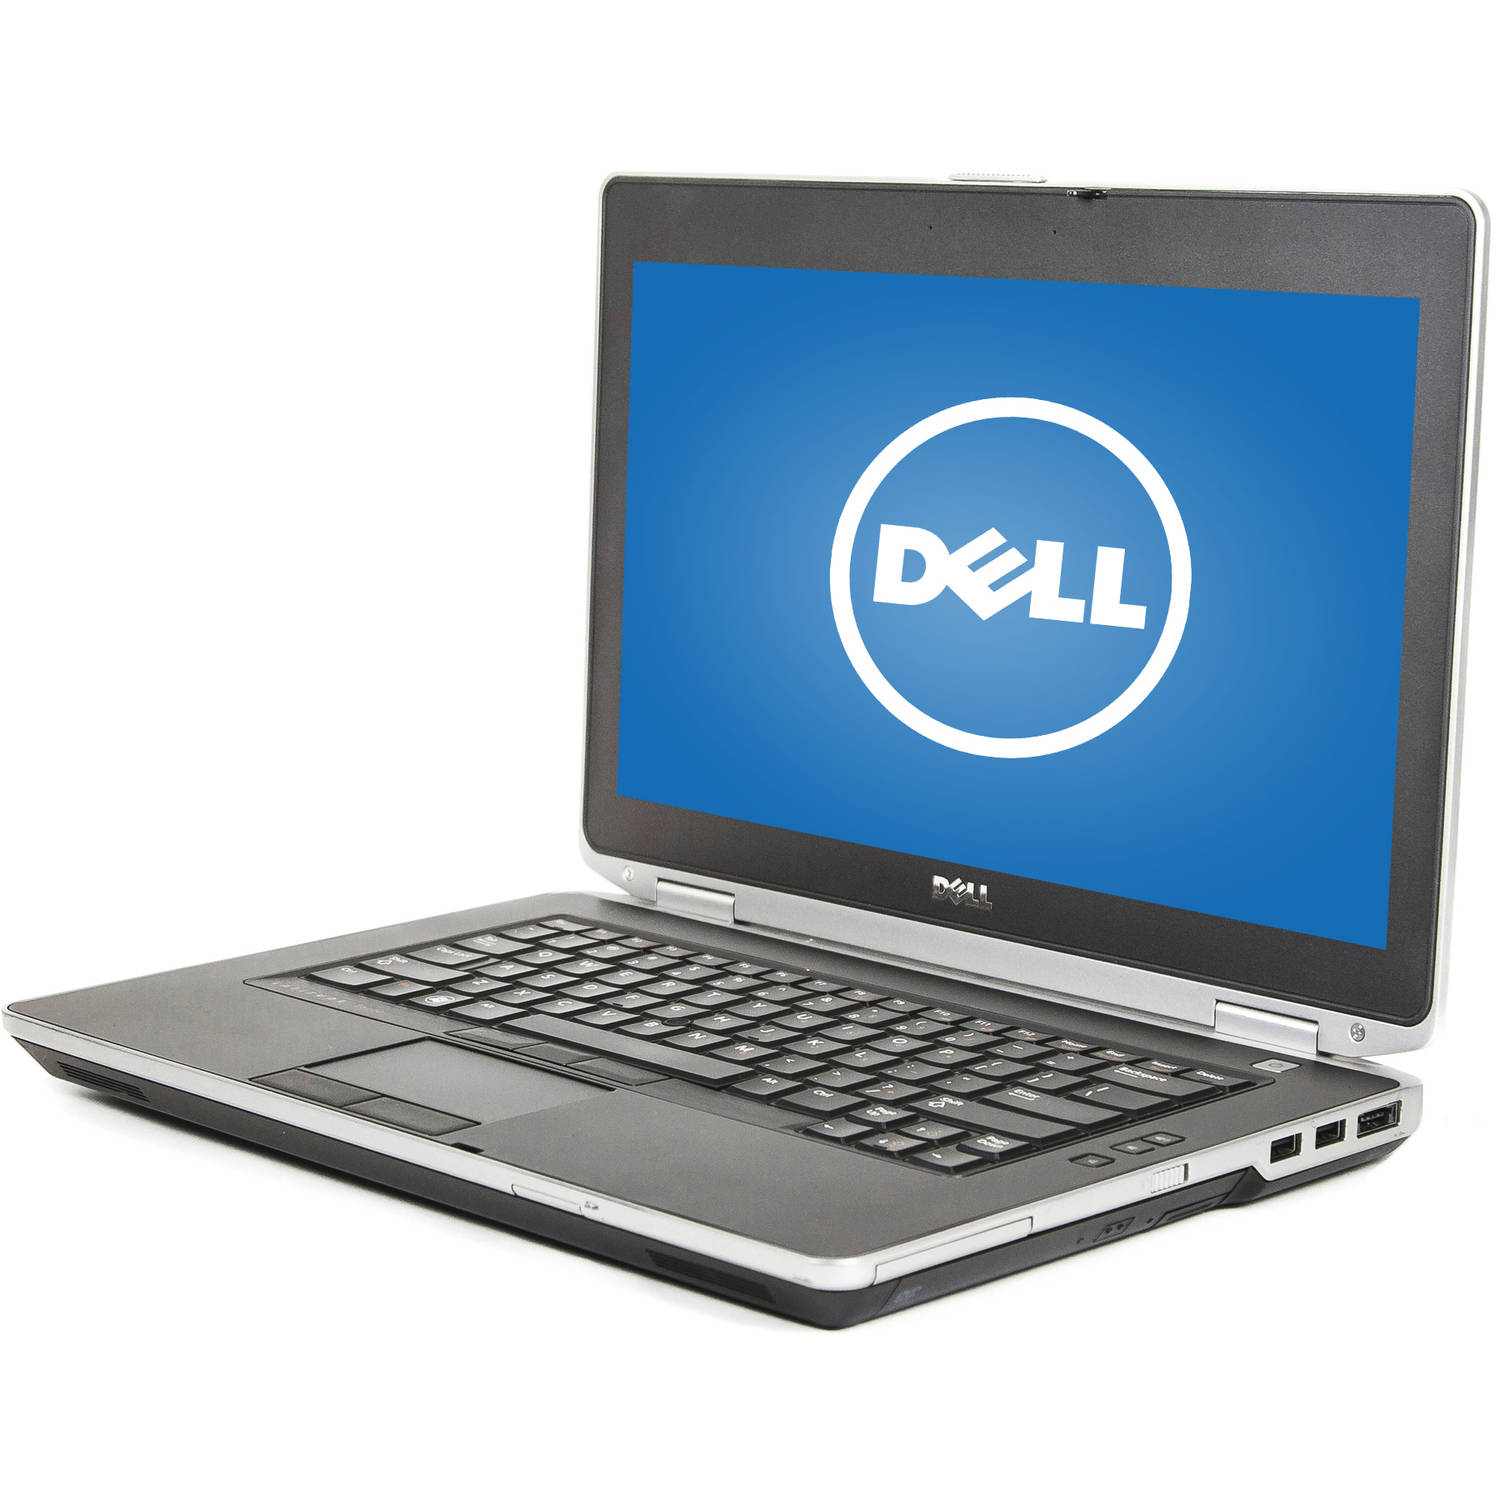 "Refurbished Dell Black 14"" E6430 Laptop PC with Intel Core i5-3320M Processor, 8GB Memory, 128GB SSD and Windows 10 Pro"